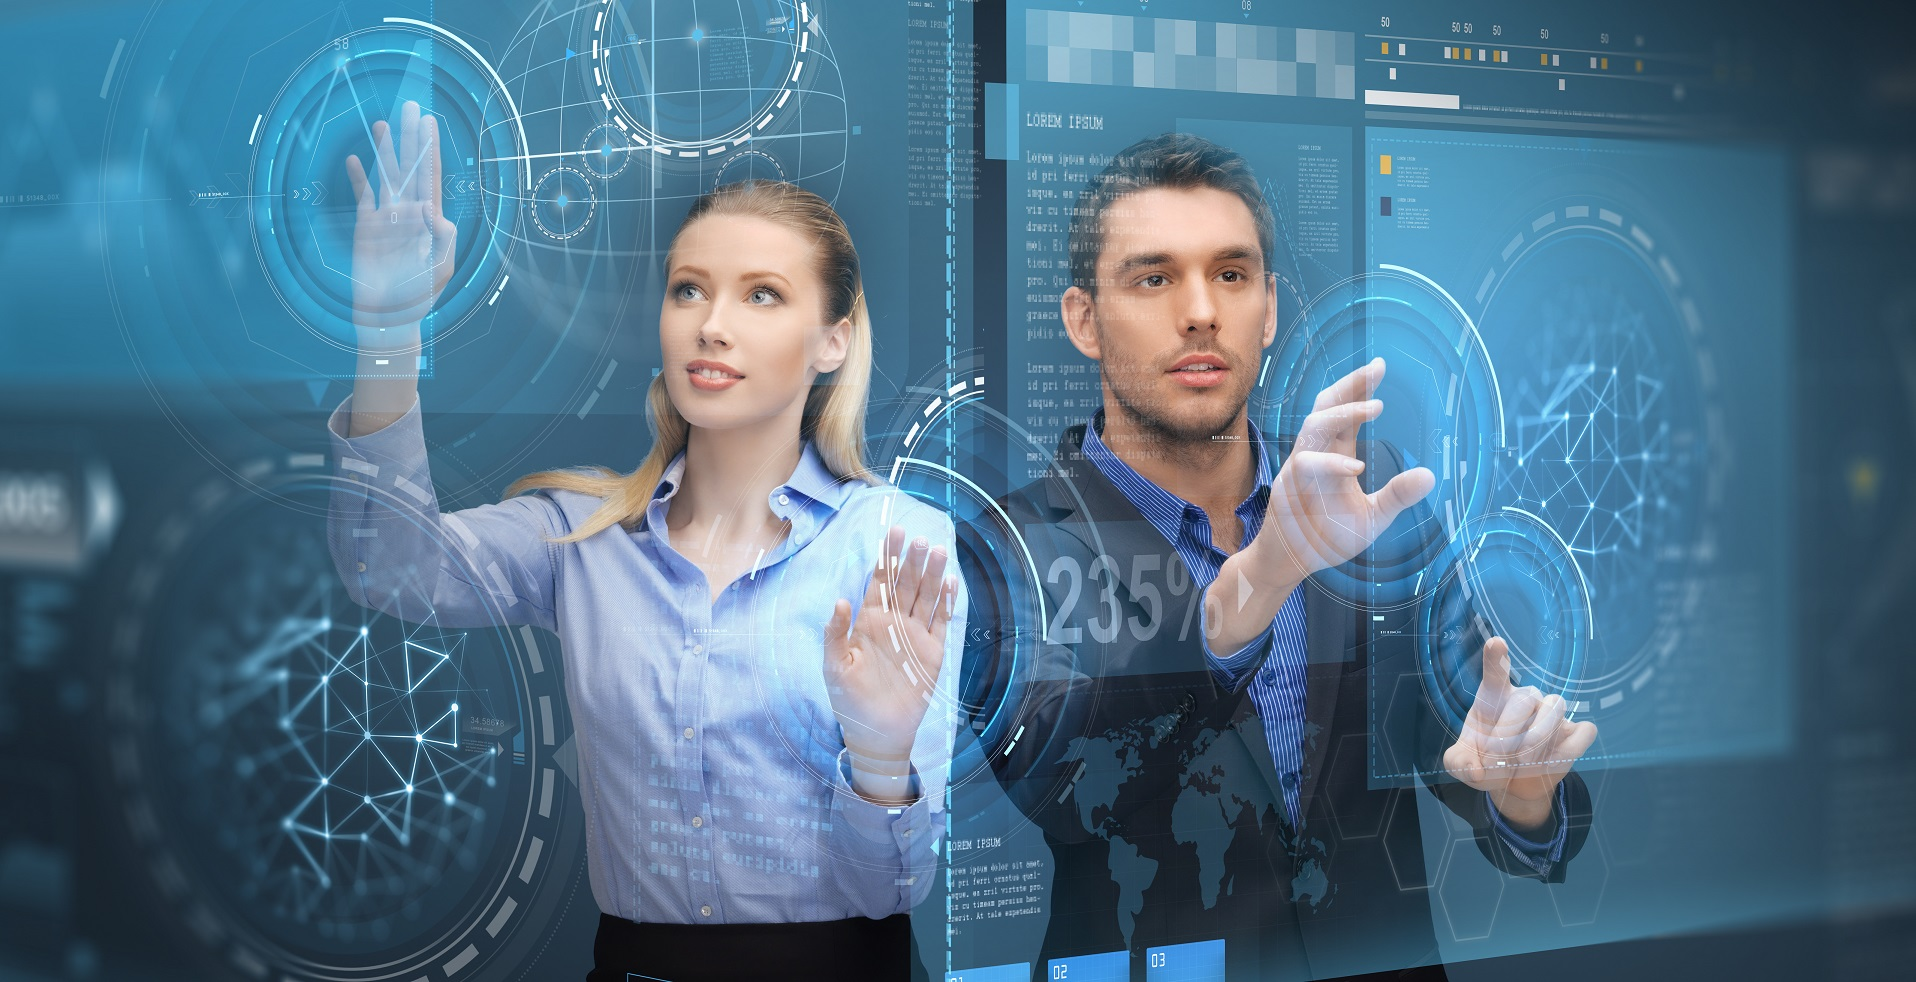 future technology, business and people concept - businessman and businesswoman using virtual screen projections